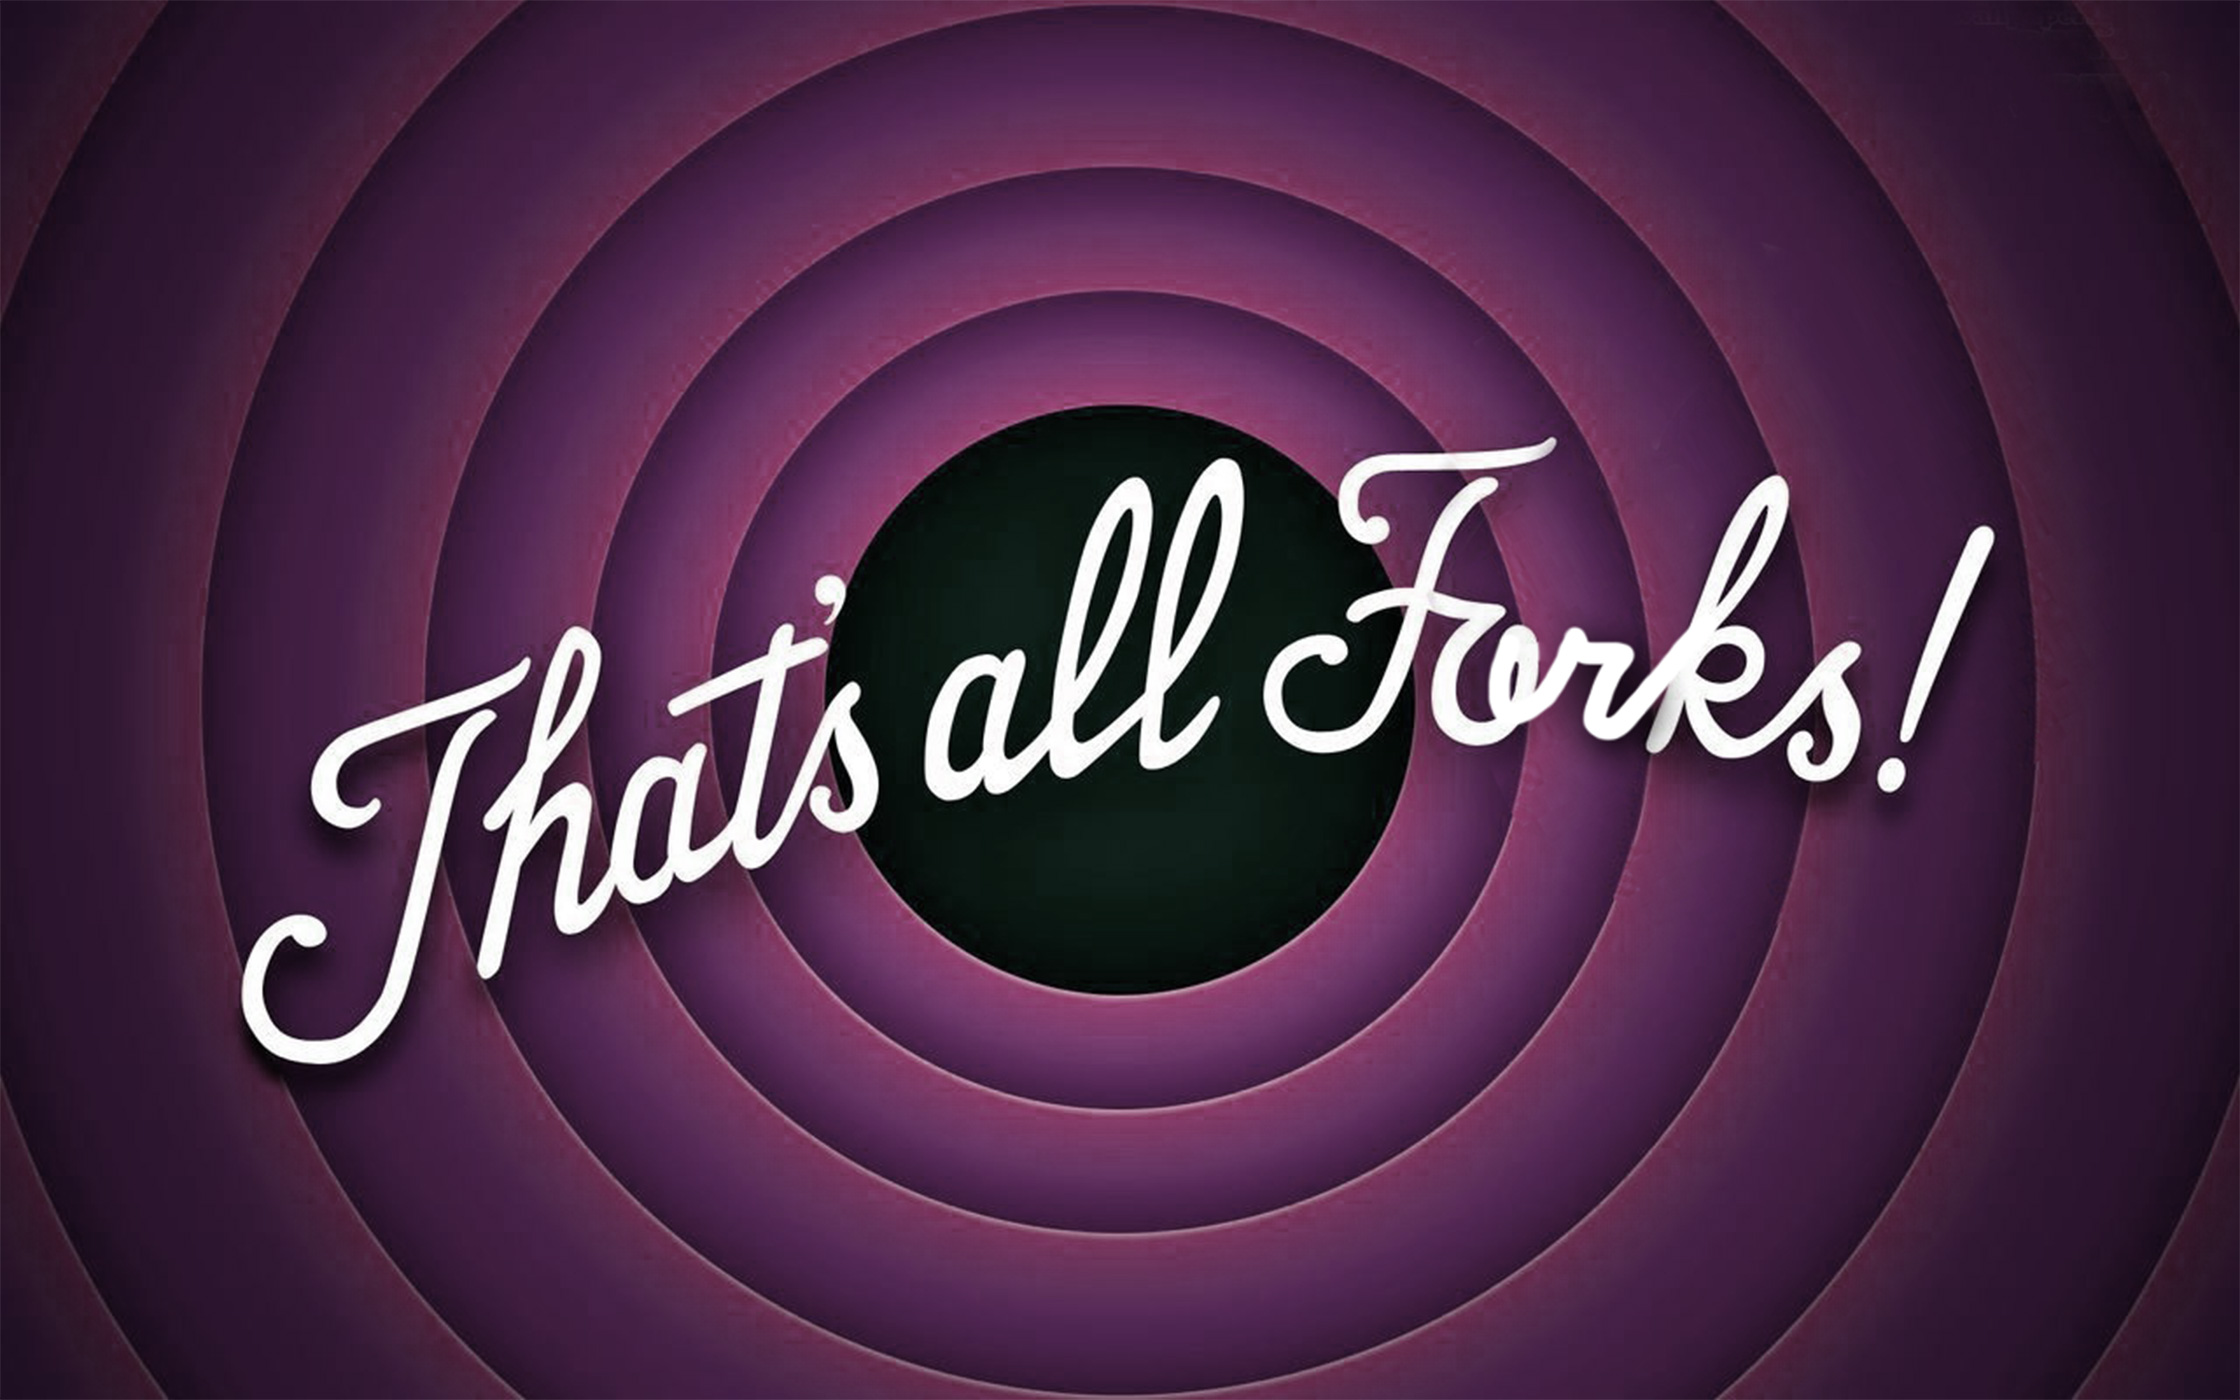 thats-all-forks.jpg